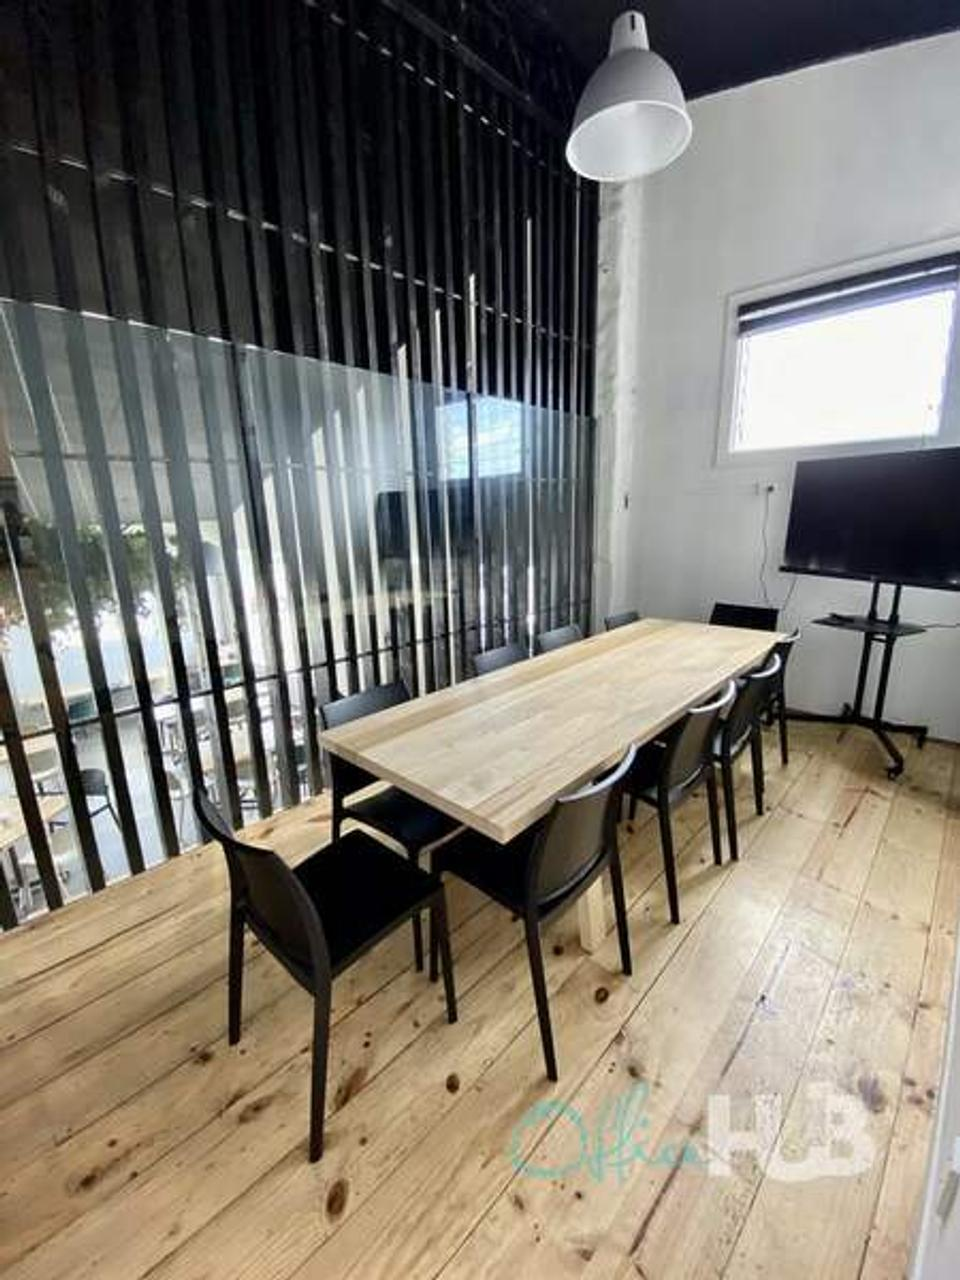 4 Person Coworking Office For Lease At Onehunga Mall, Onehunga, Auckland, 1061 - image 2